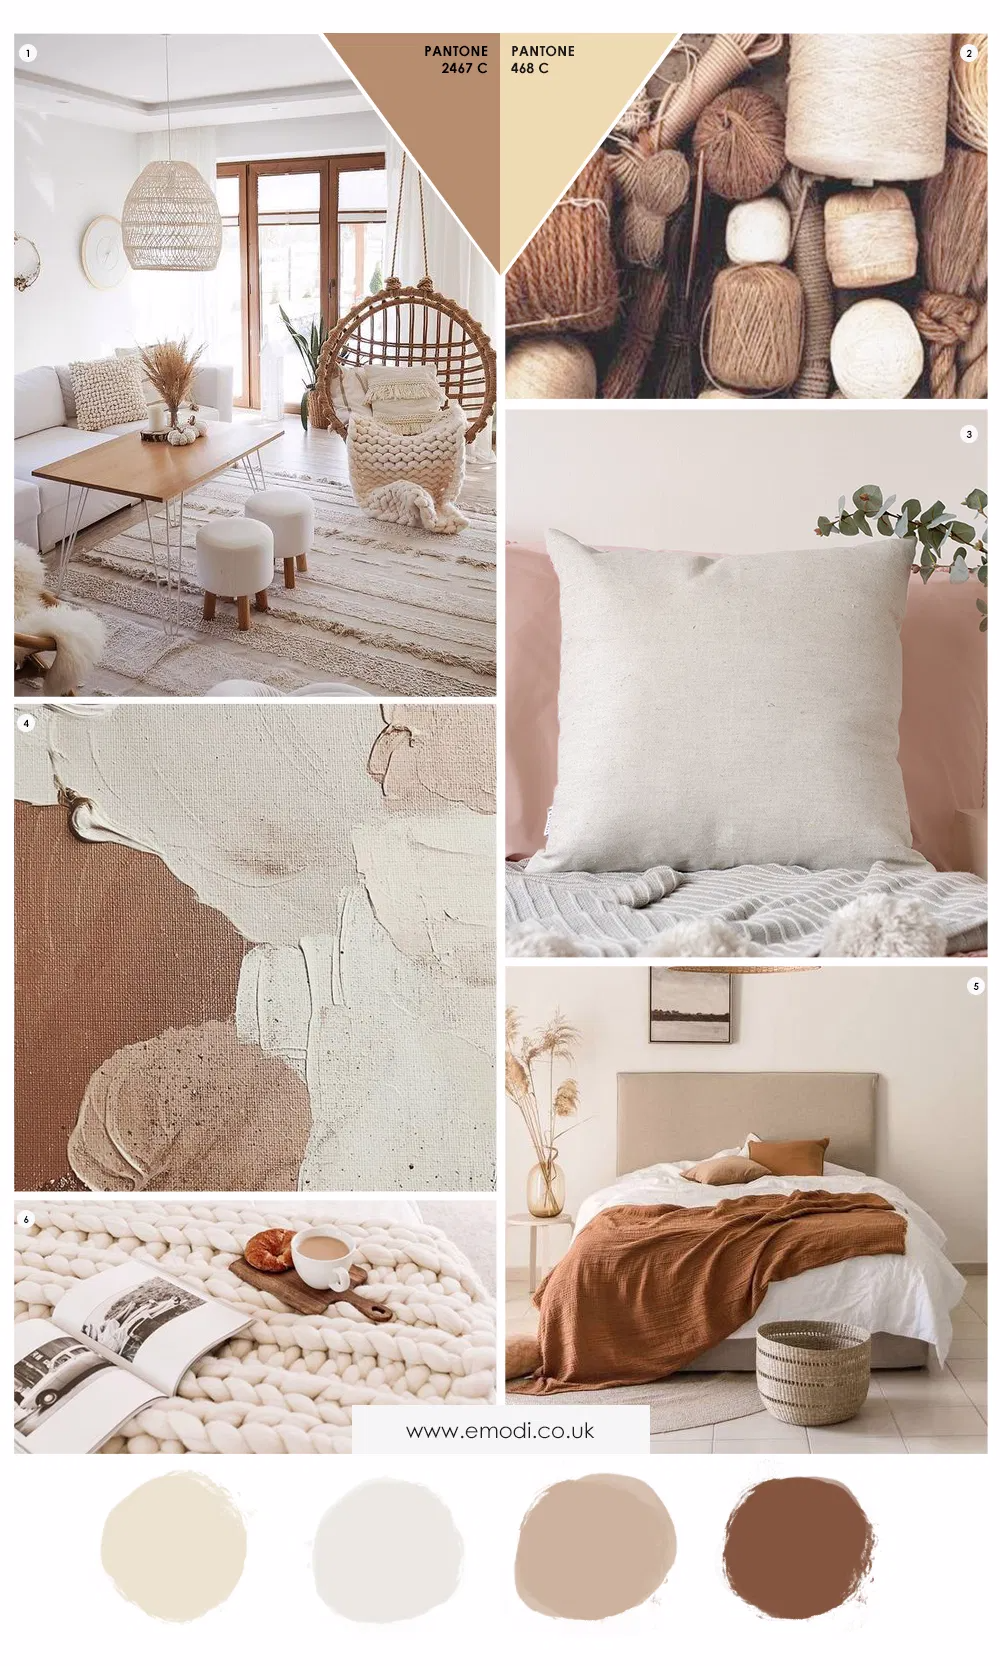 Interior Mood board: Beige & Brown interior decor